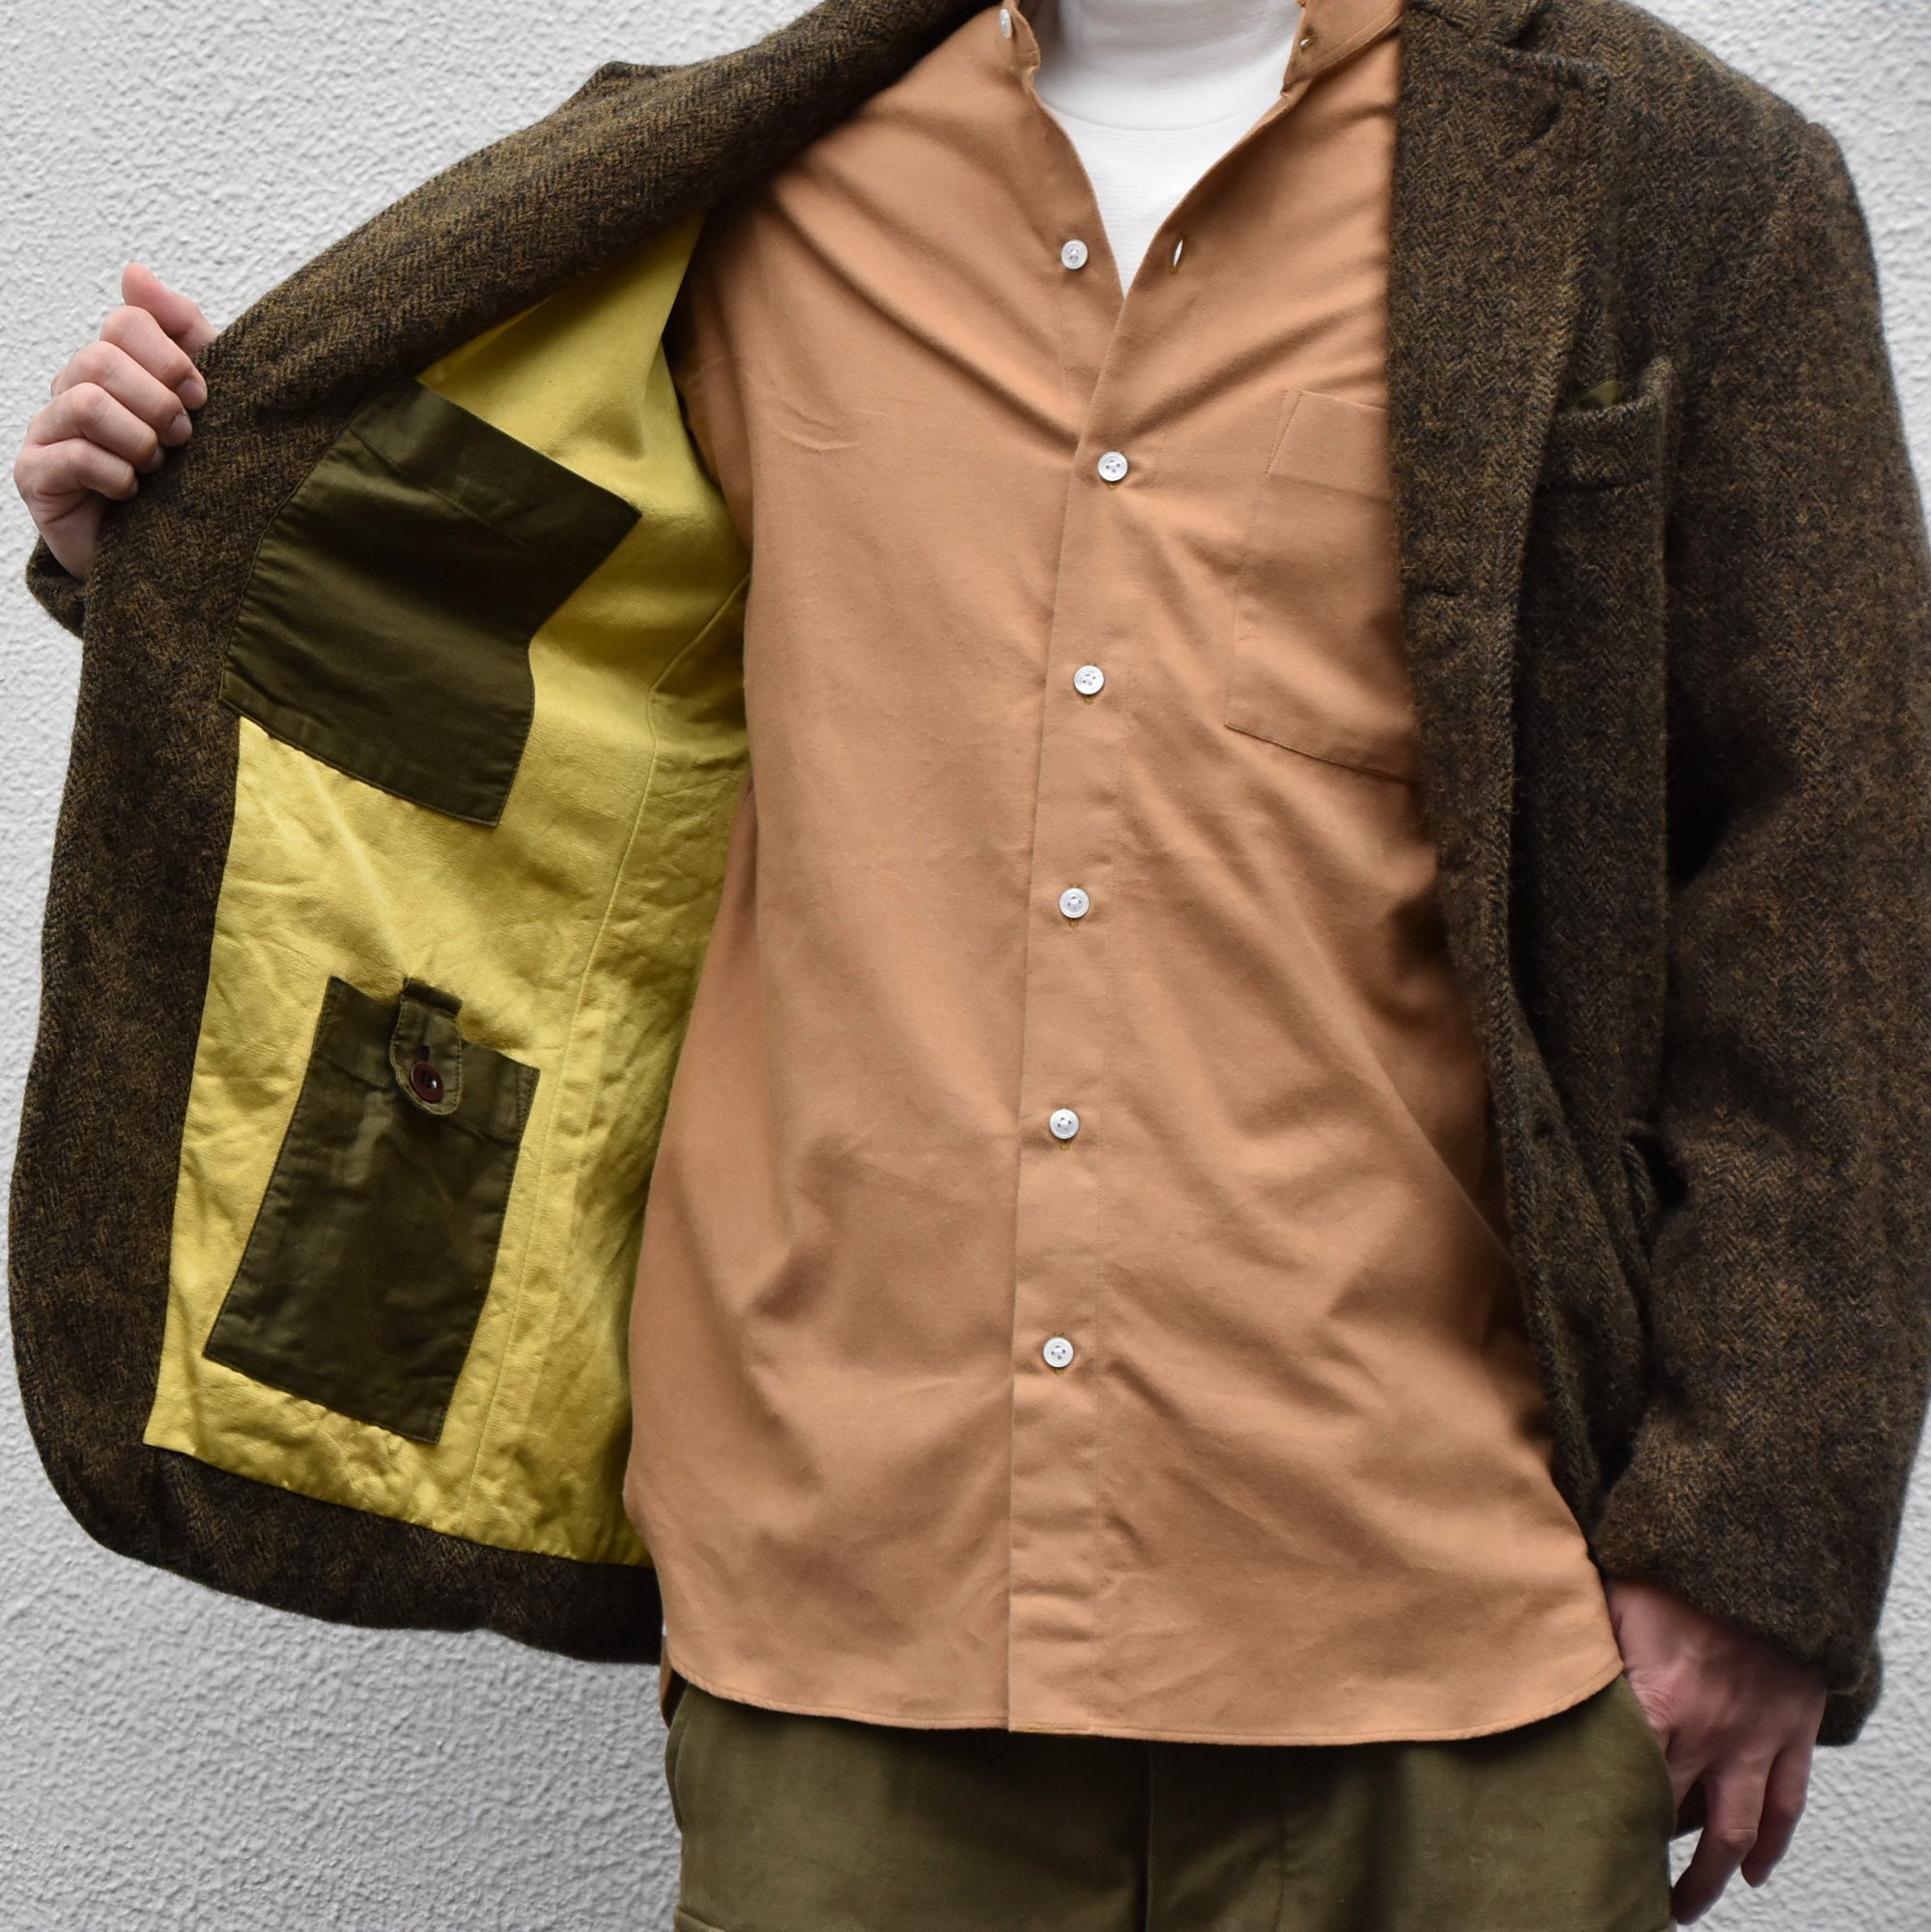 【2020】Chez Vidalenc (シェヴィダレンク)/ HARRIS TWEED JACKET-GREEN FOX- #JK01(6)